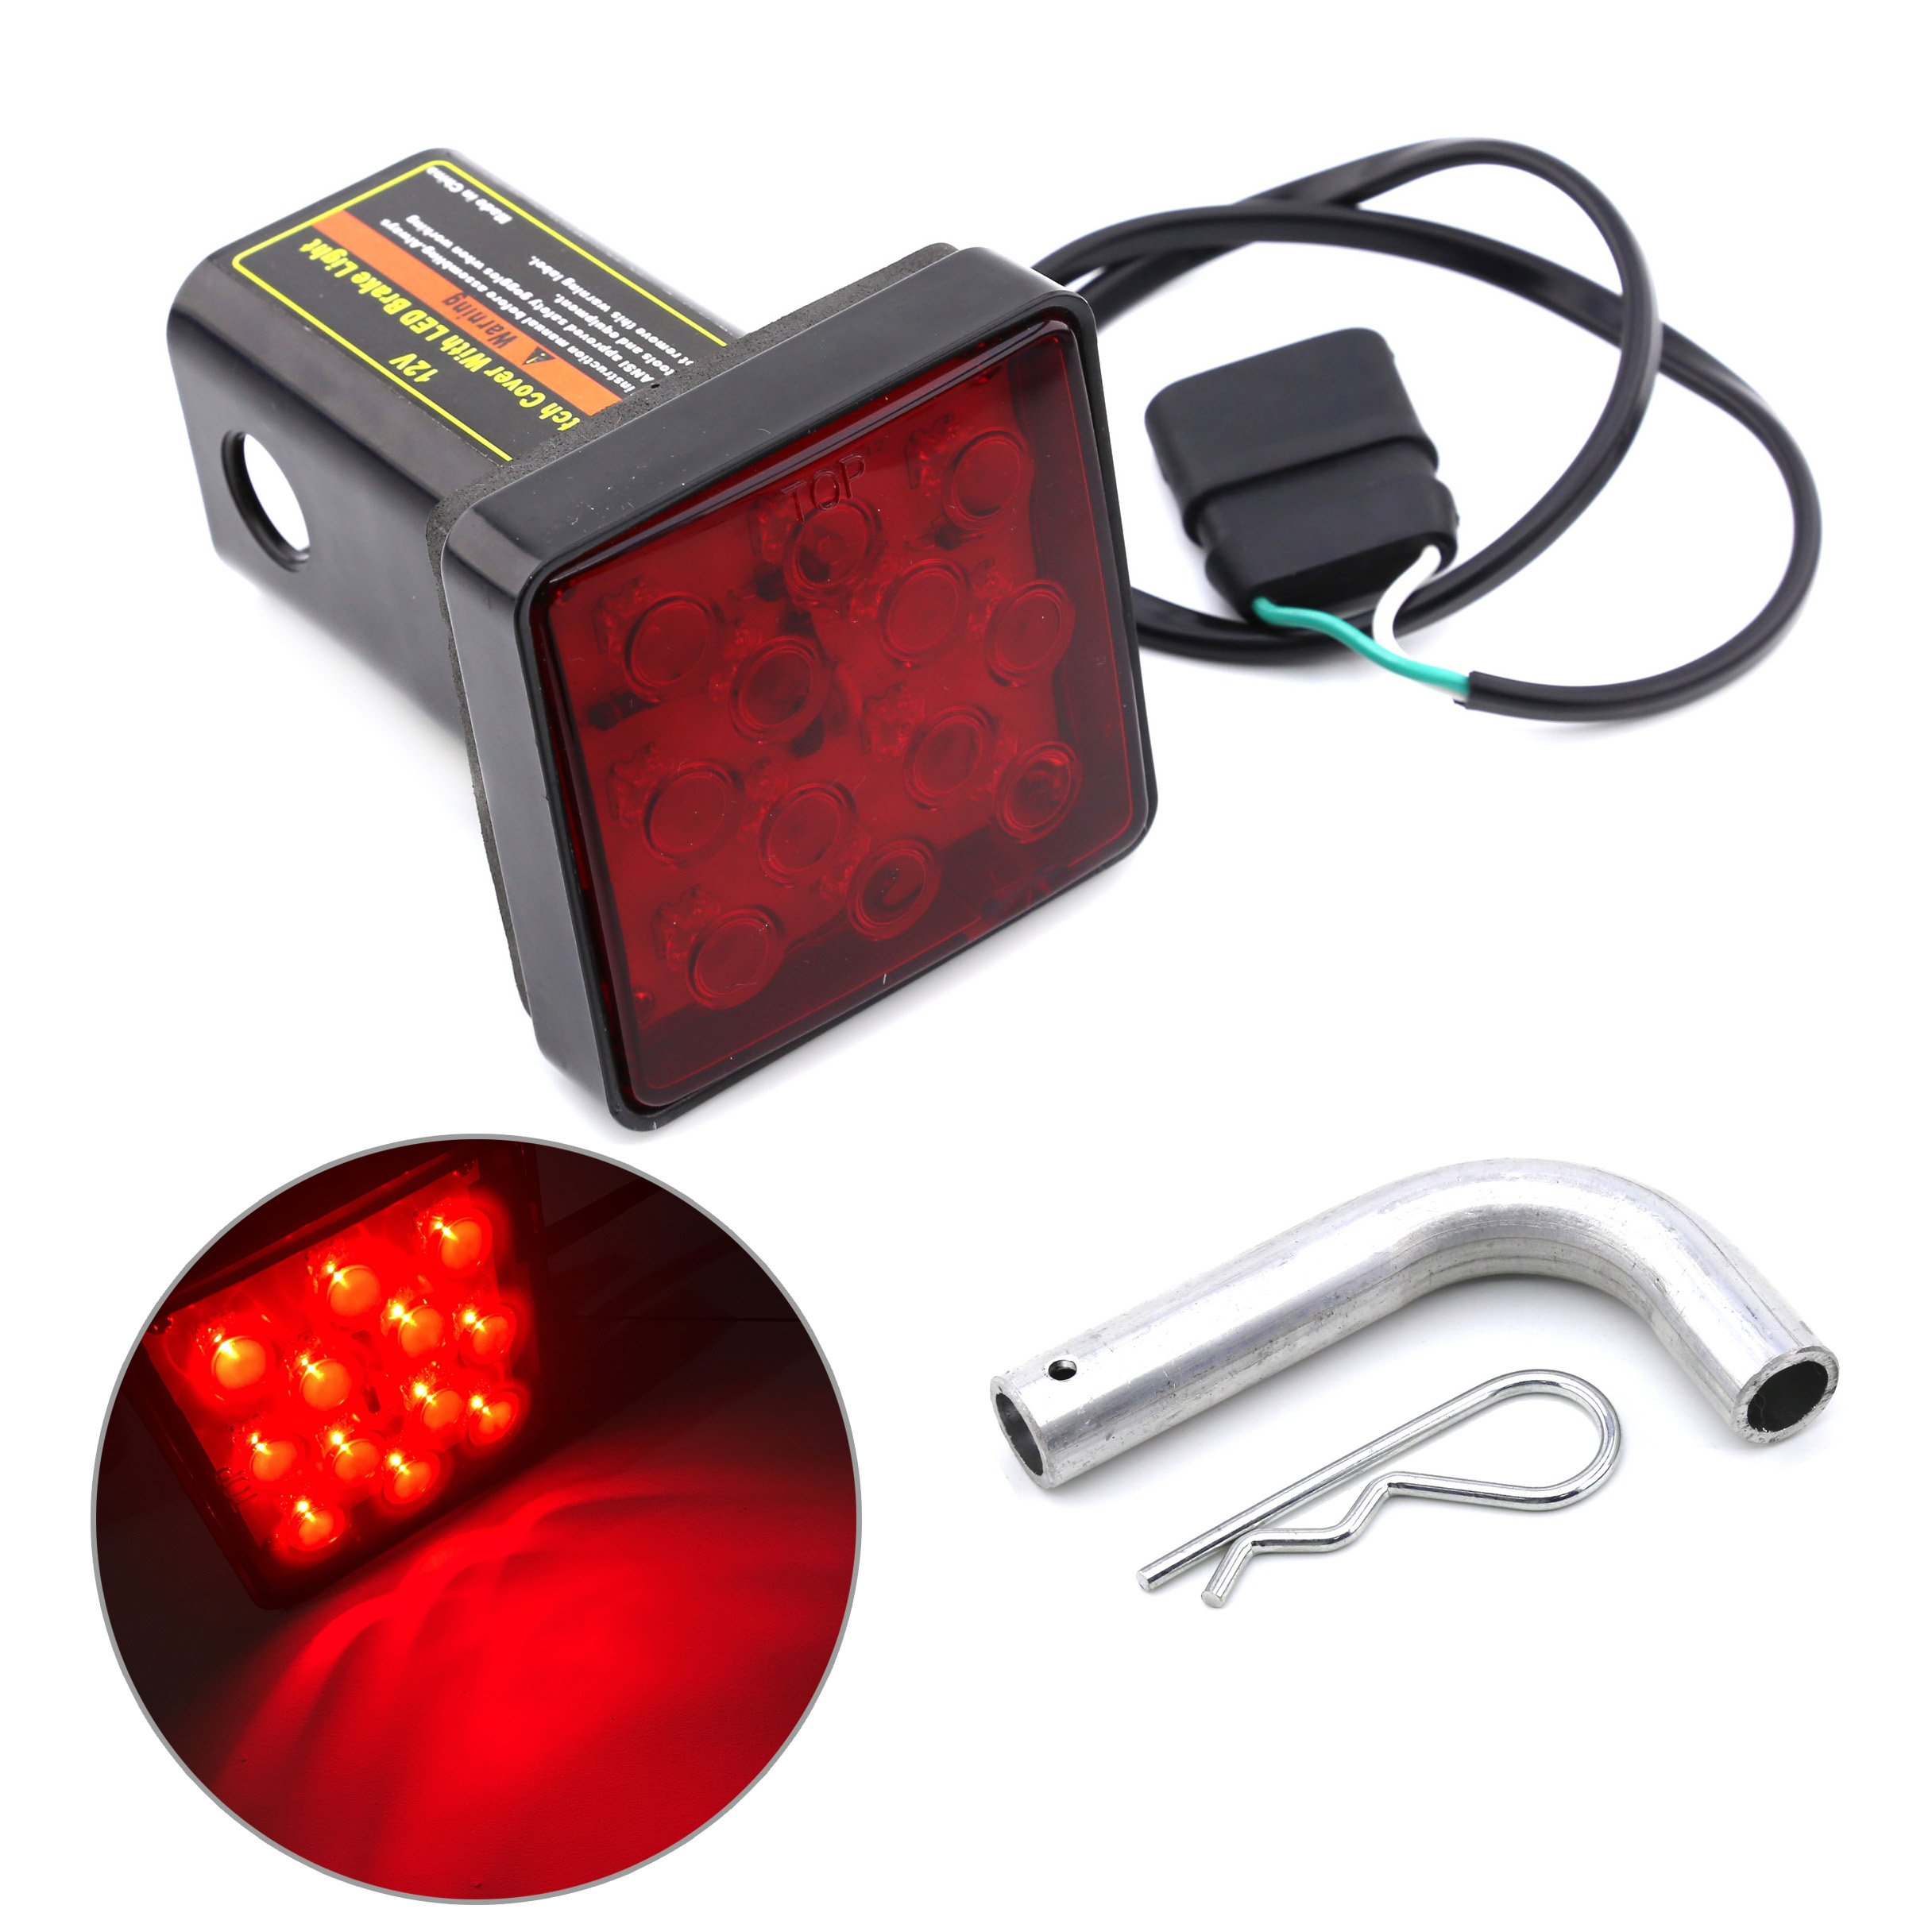 Keyecu 12 LED Tail Brake Light with 2'' Red Lense Trailer Hitch Receiver Cover for Towing Hauling Truck SUV RV 12V by Keyecu